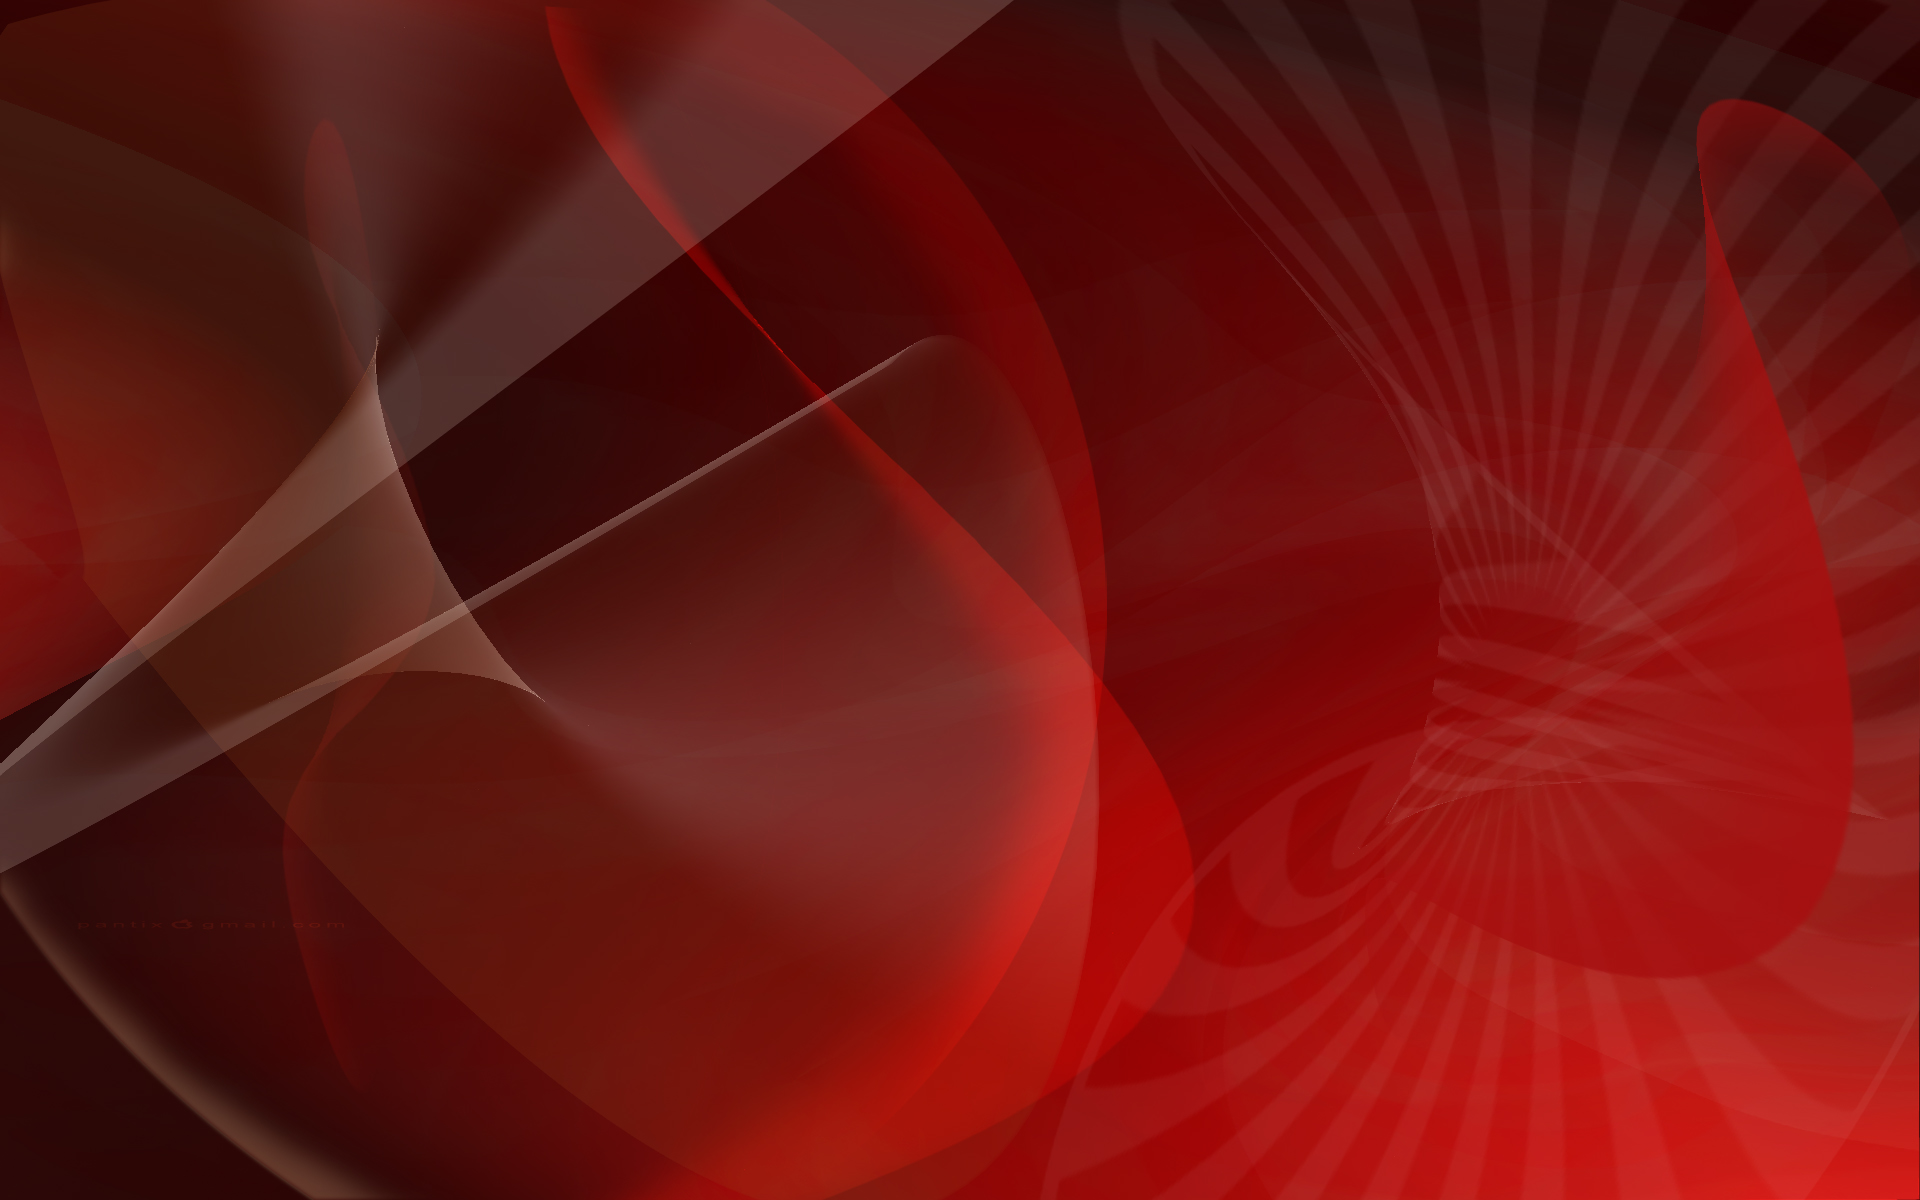 abstract wallpaper red images 1920x1200 1920x1200